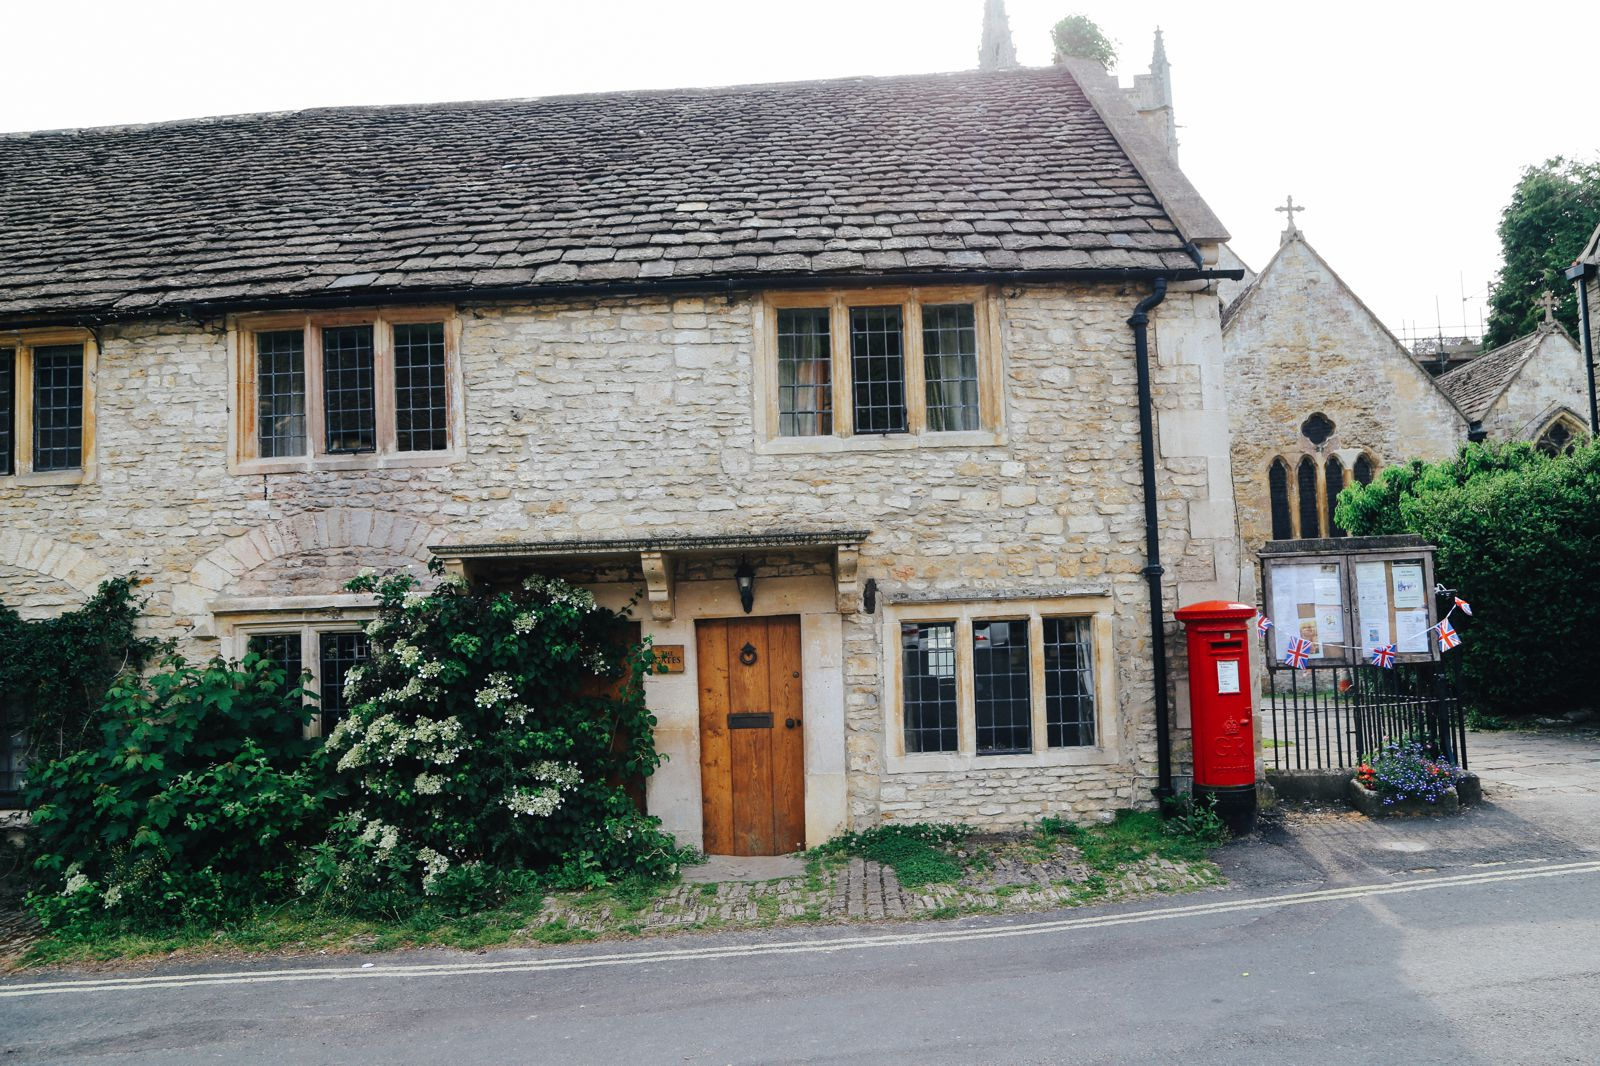 Exploring One Of England's Most Beautiful Villages - Castle Combe (12)